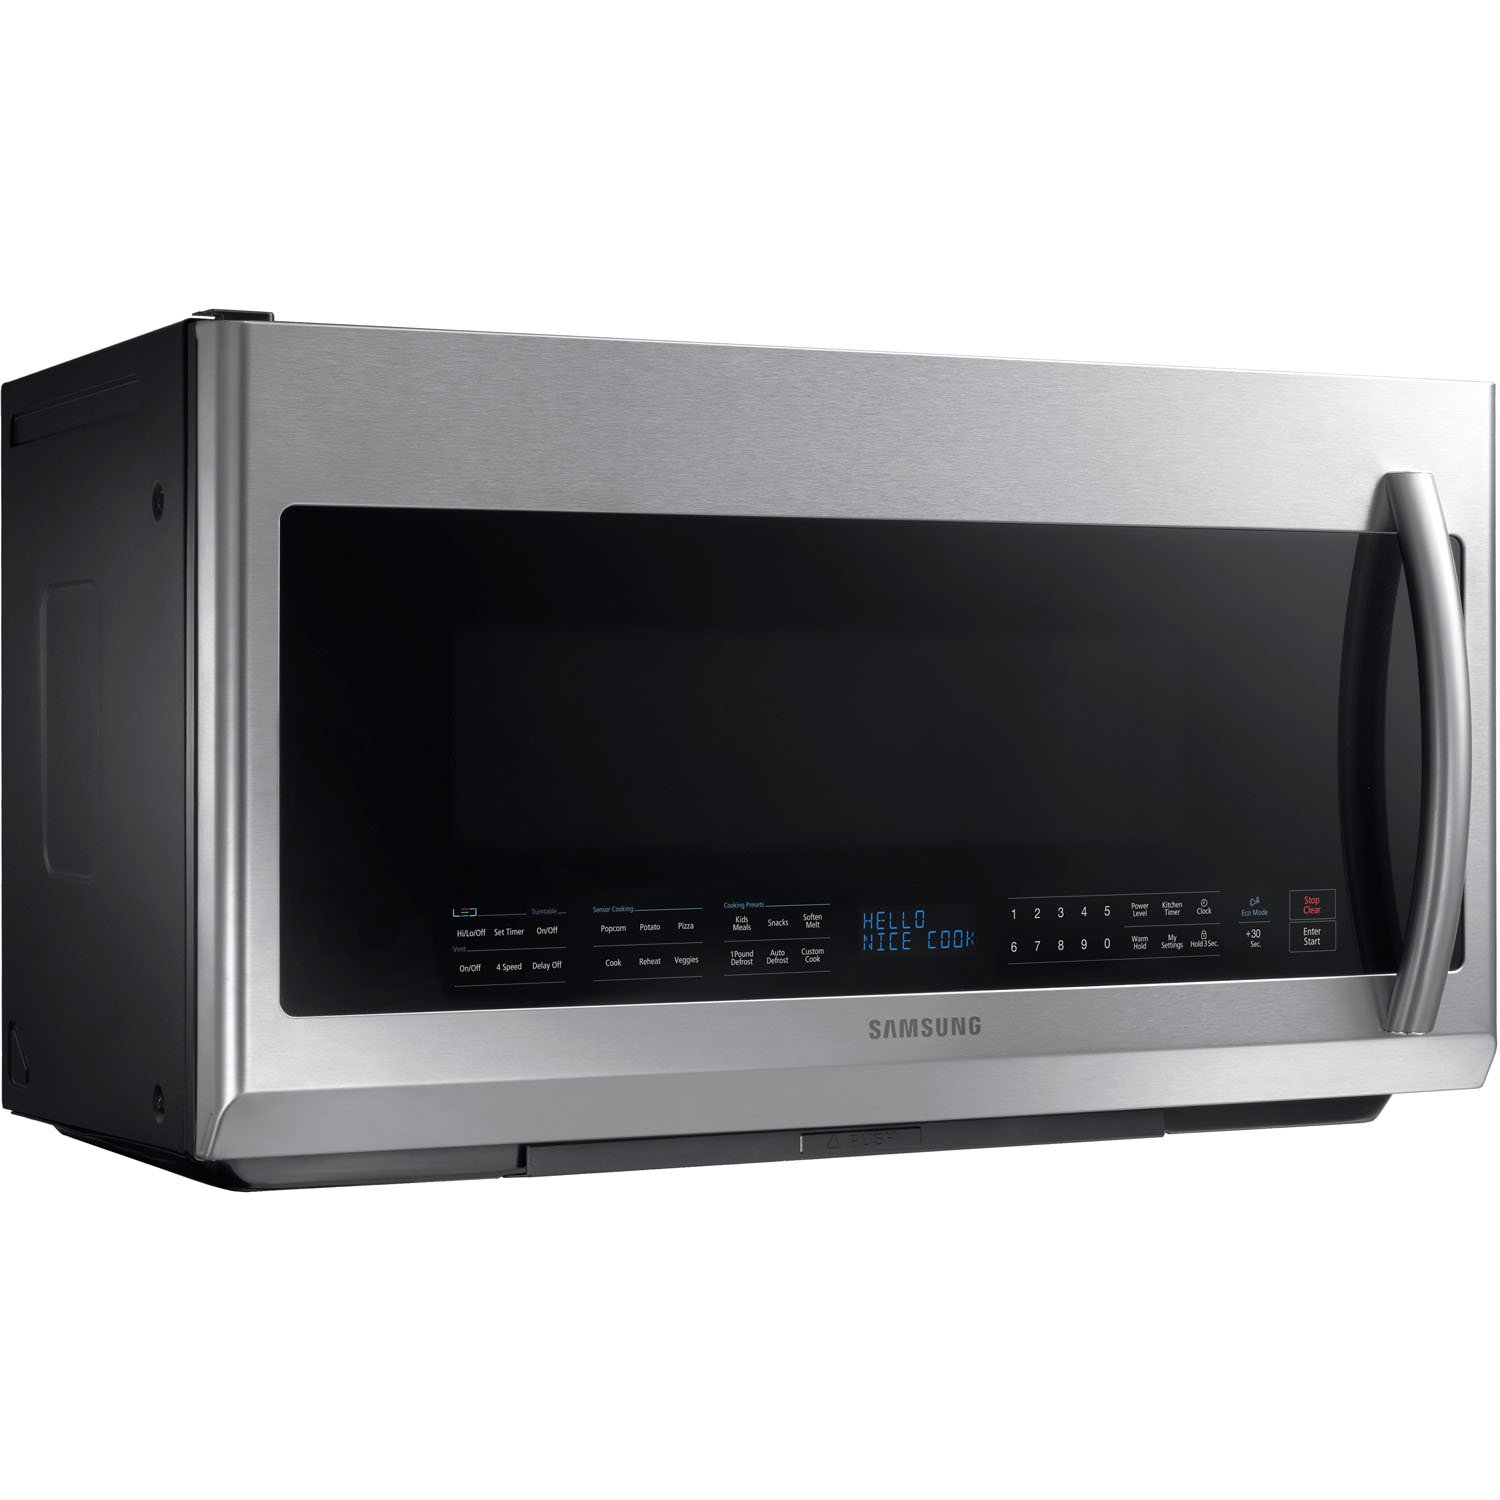 Samsung ME21F707Over-The-Range Microwave, 2.1 Cubic Feet